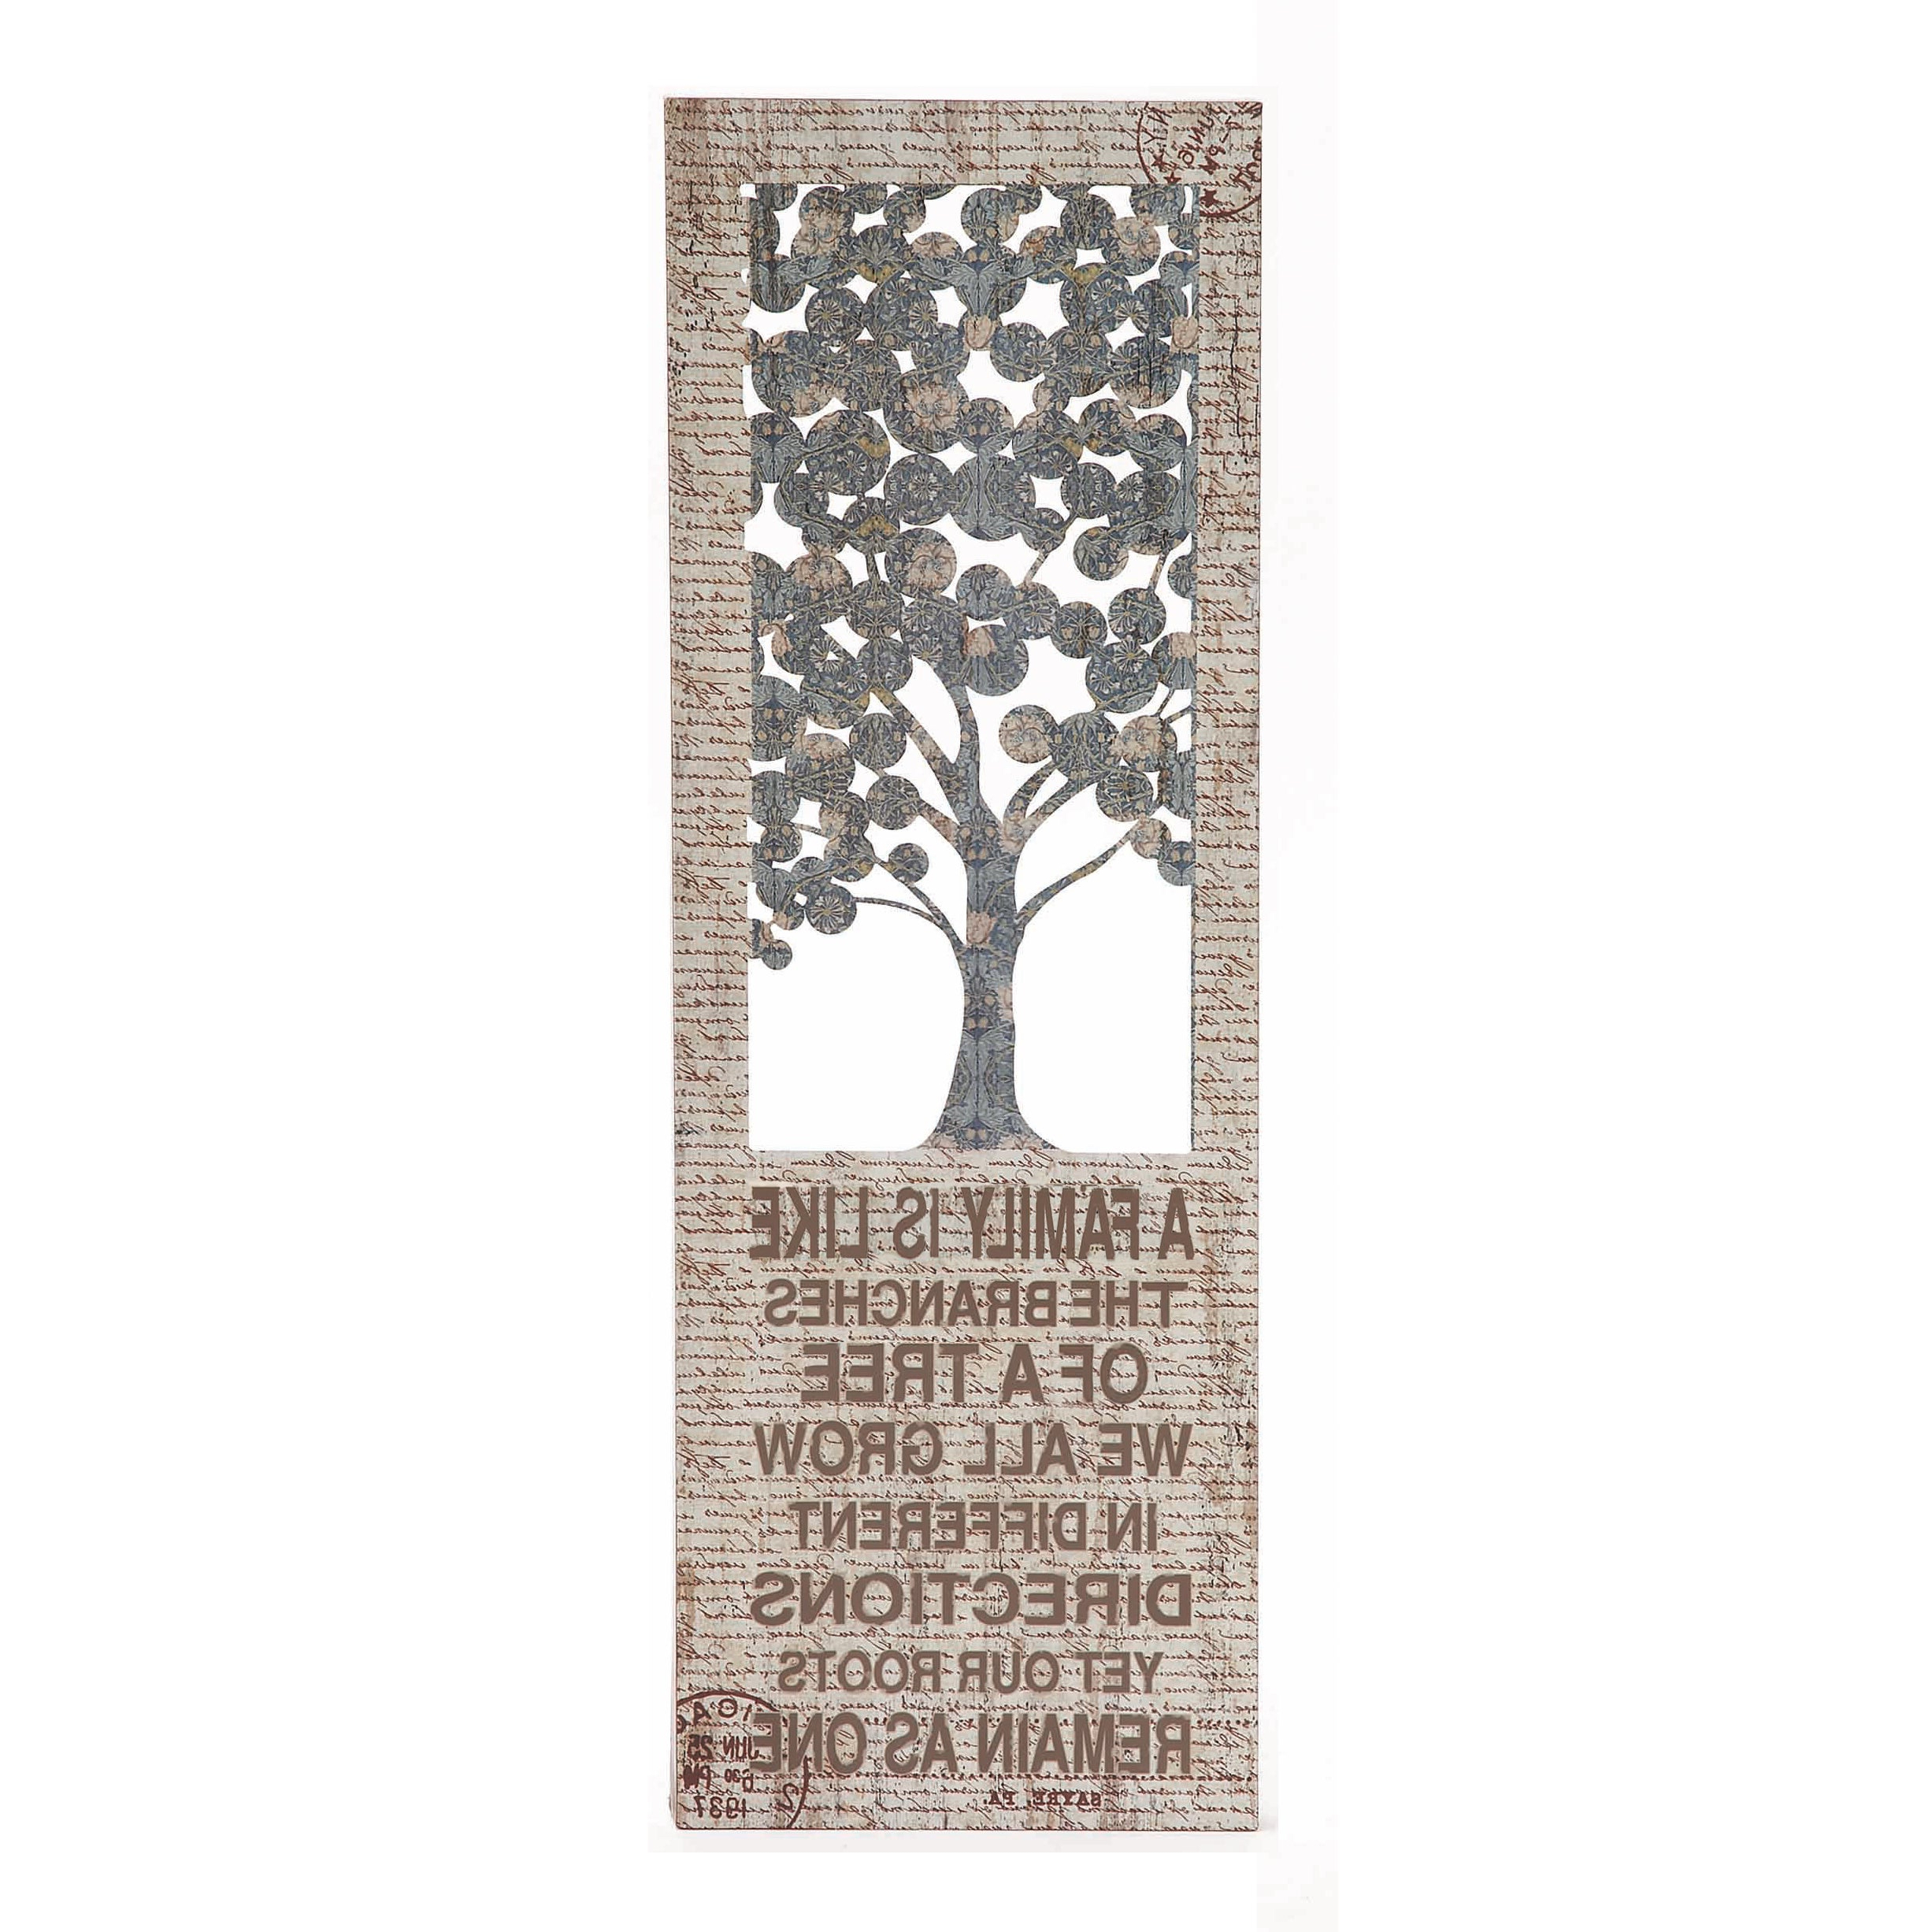 Family Themed Creative Metal Wall Decor Intended For Popular Family Themed Creative Metal Wall Décor (View 2 of 20)